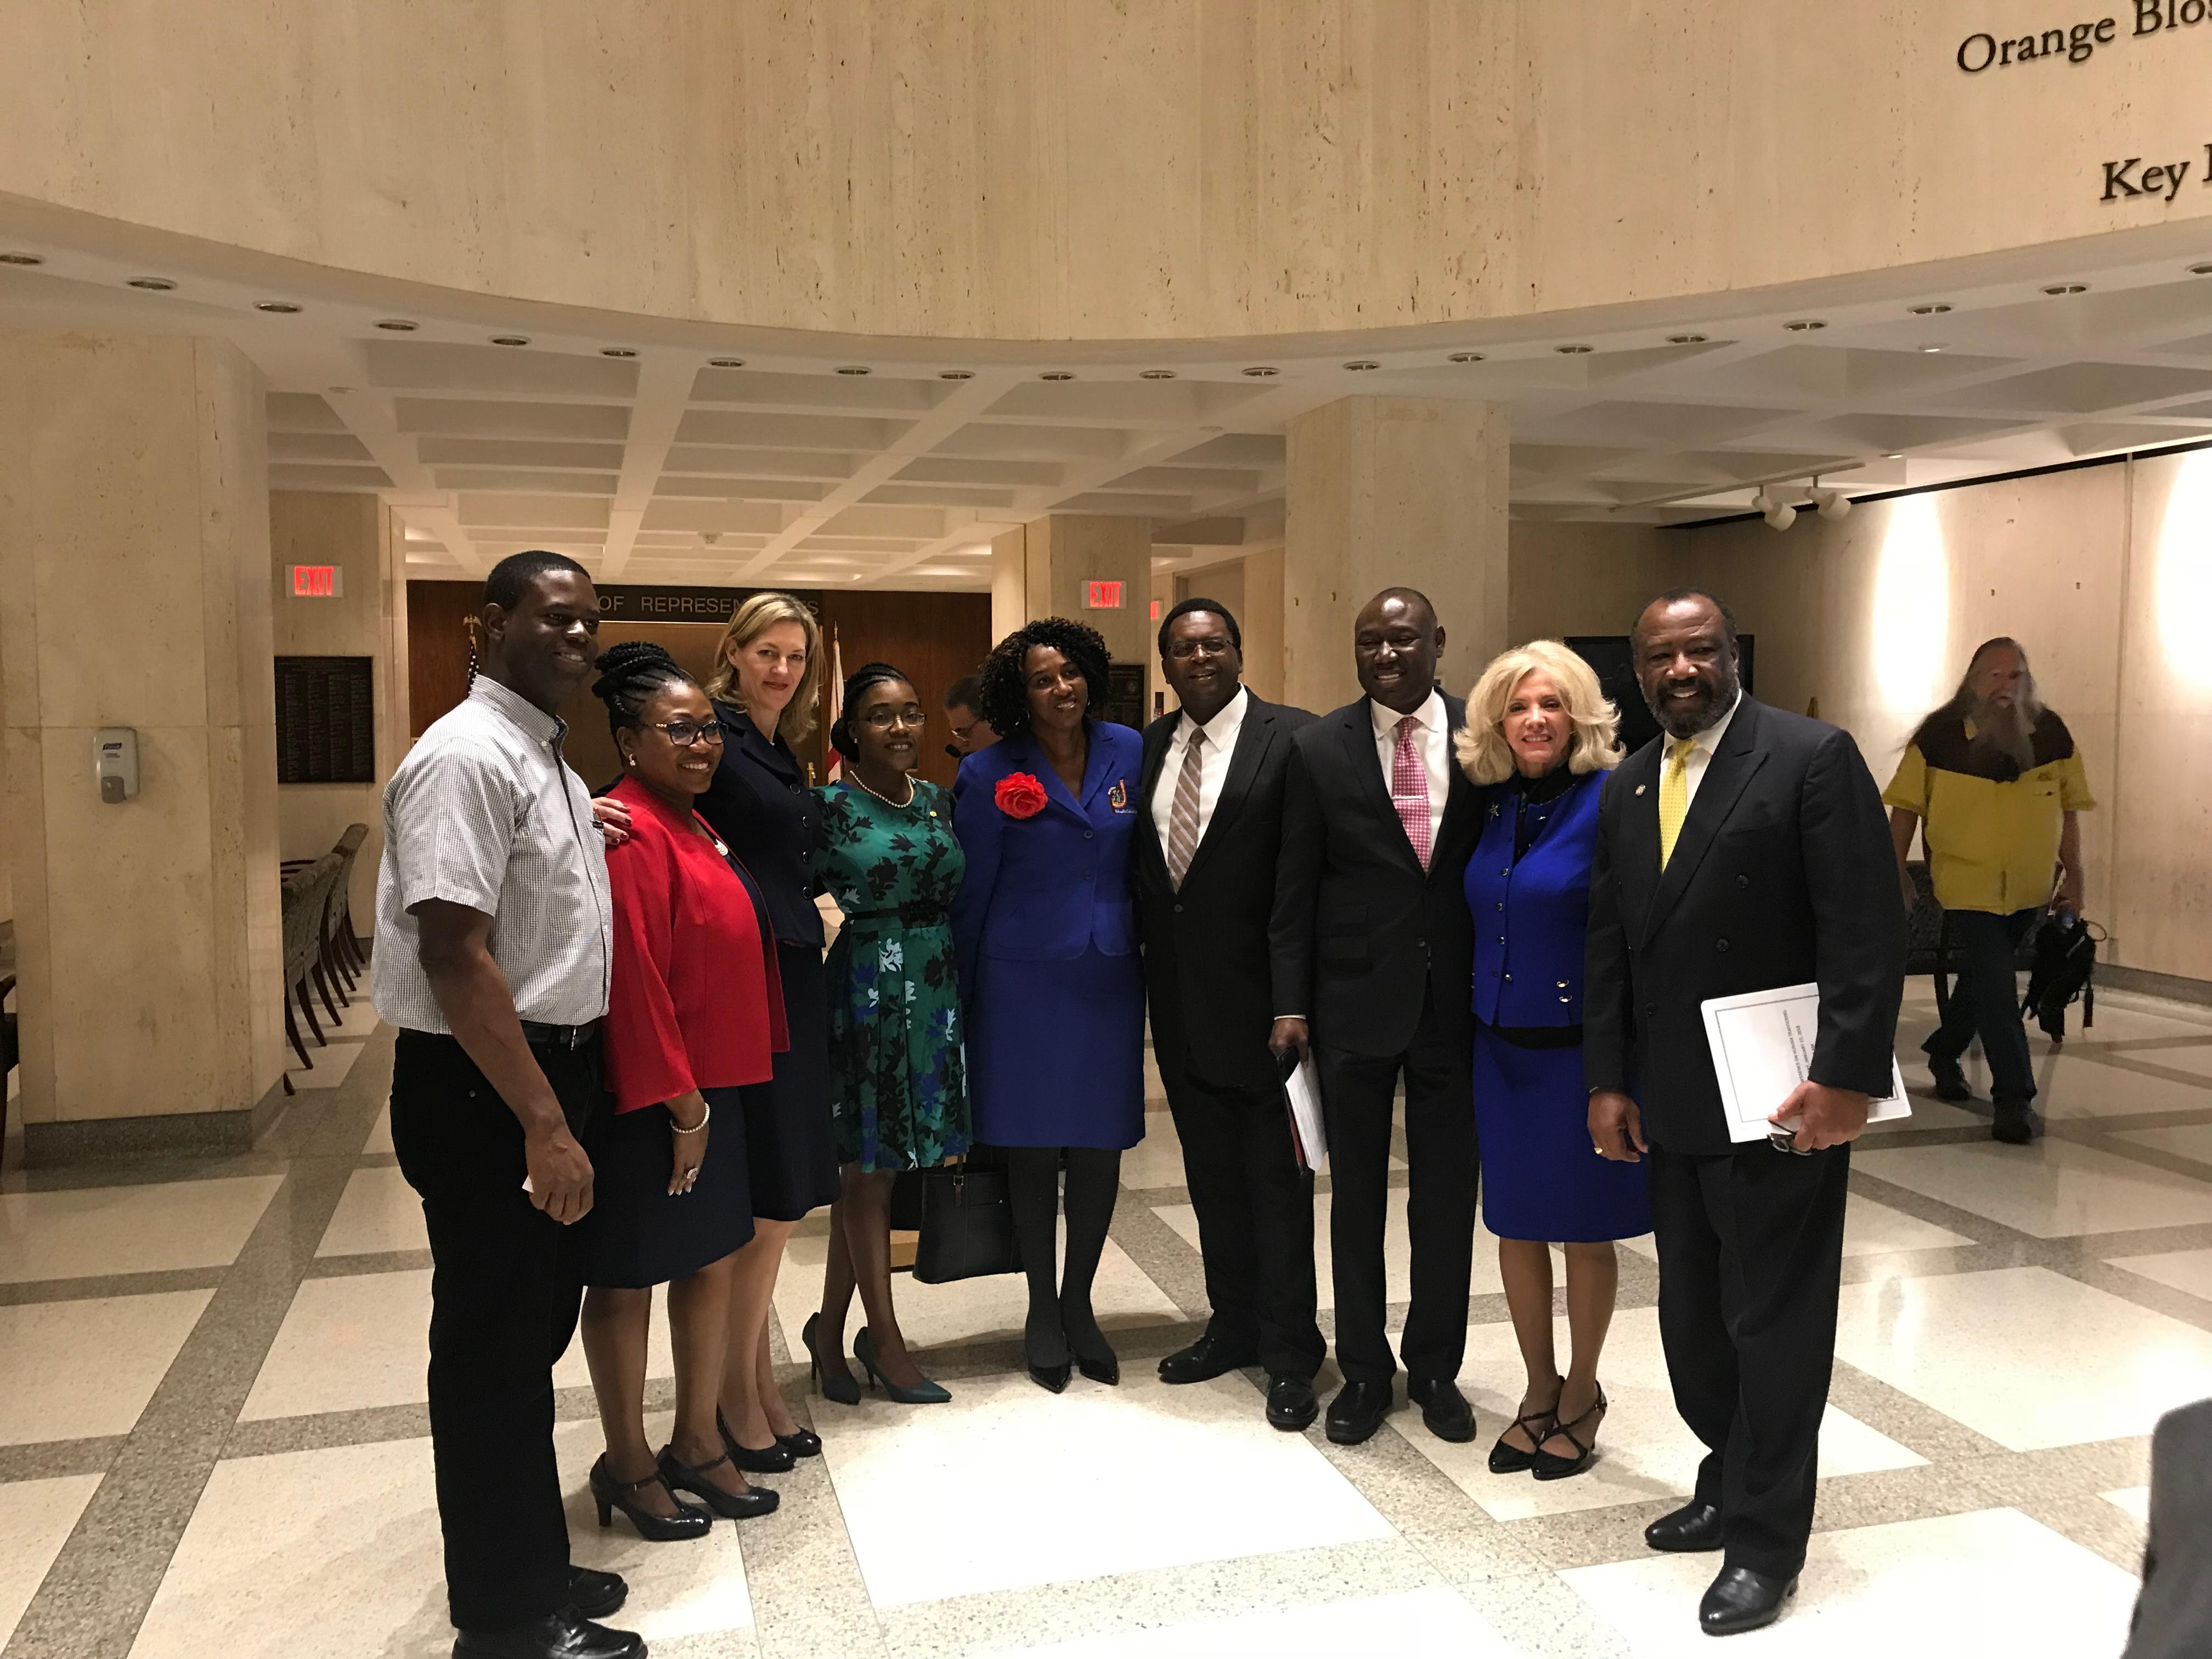 Lawmakers, attorneys, leaders back legislation to combat human trafficking in Florida with education, hotline